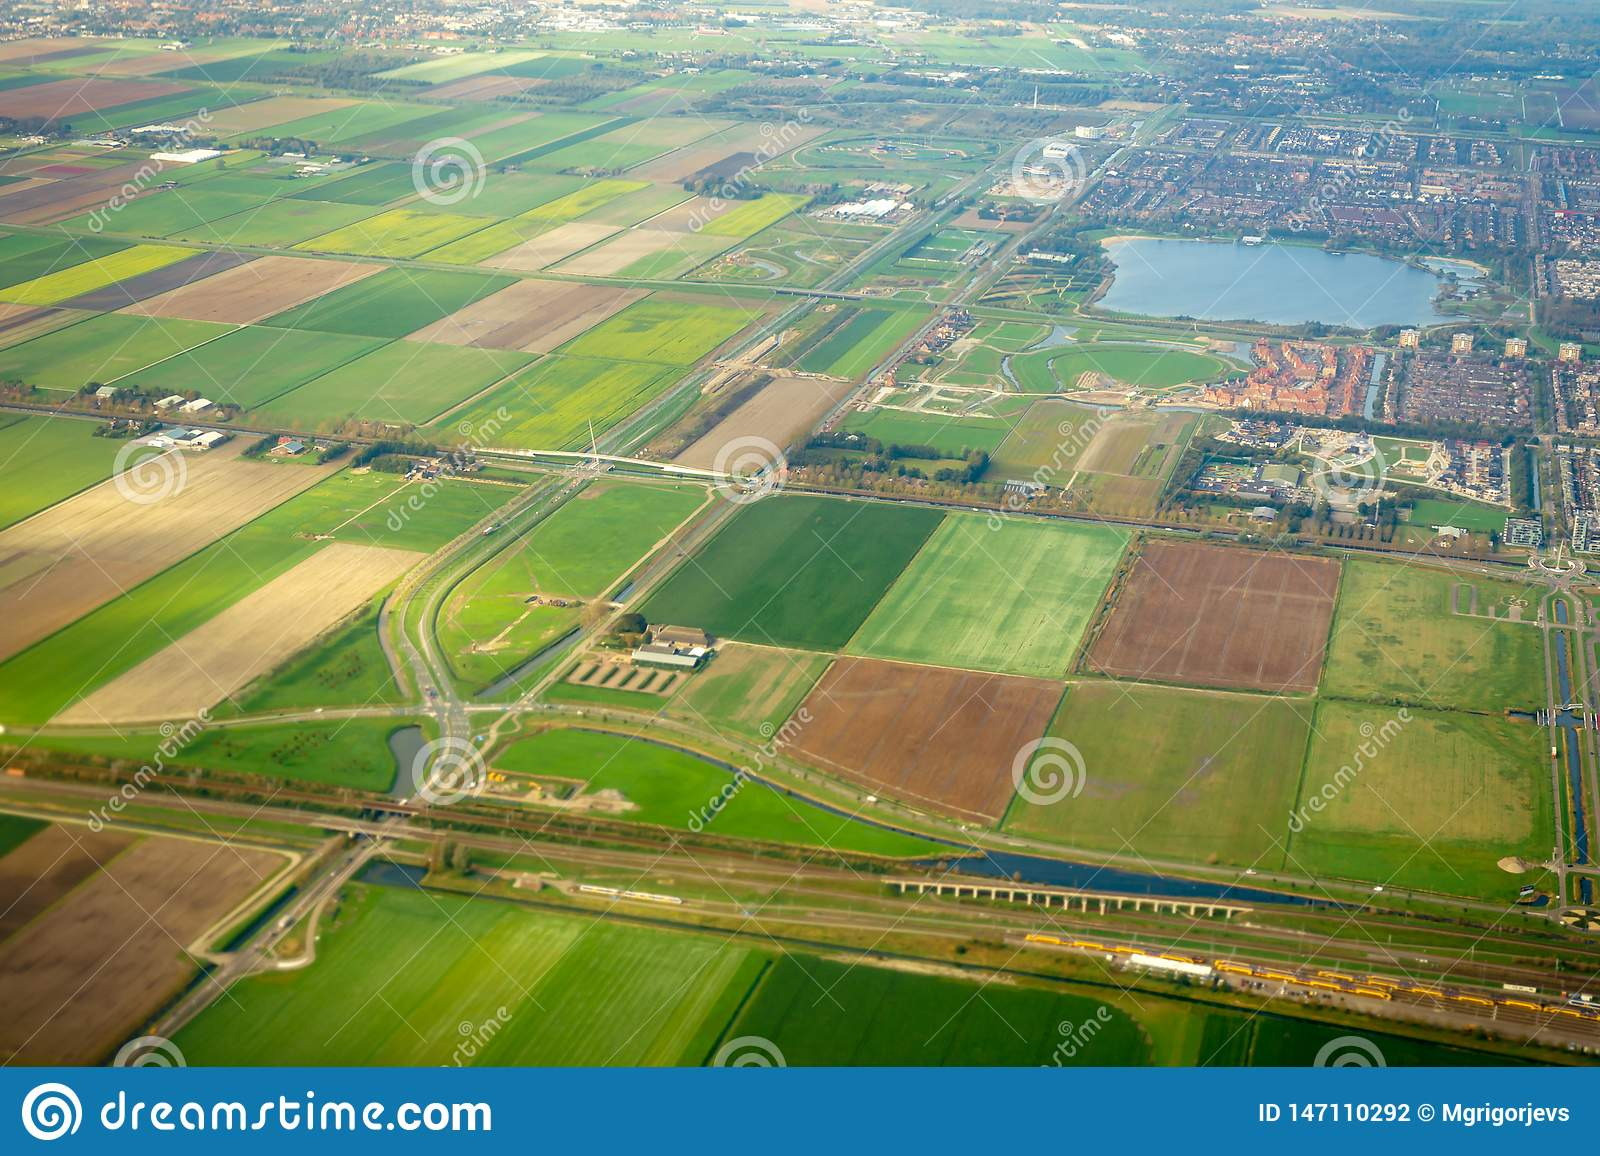 Aeral view on agricultural fields and railway with train